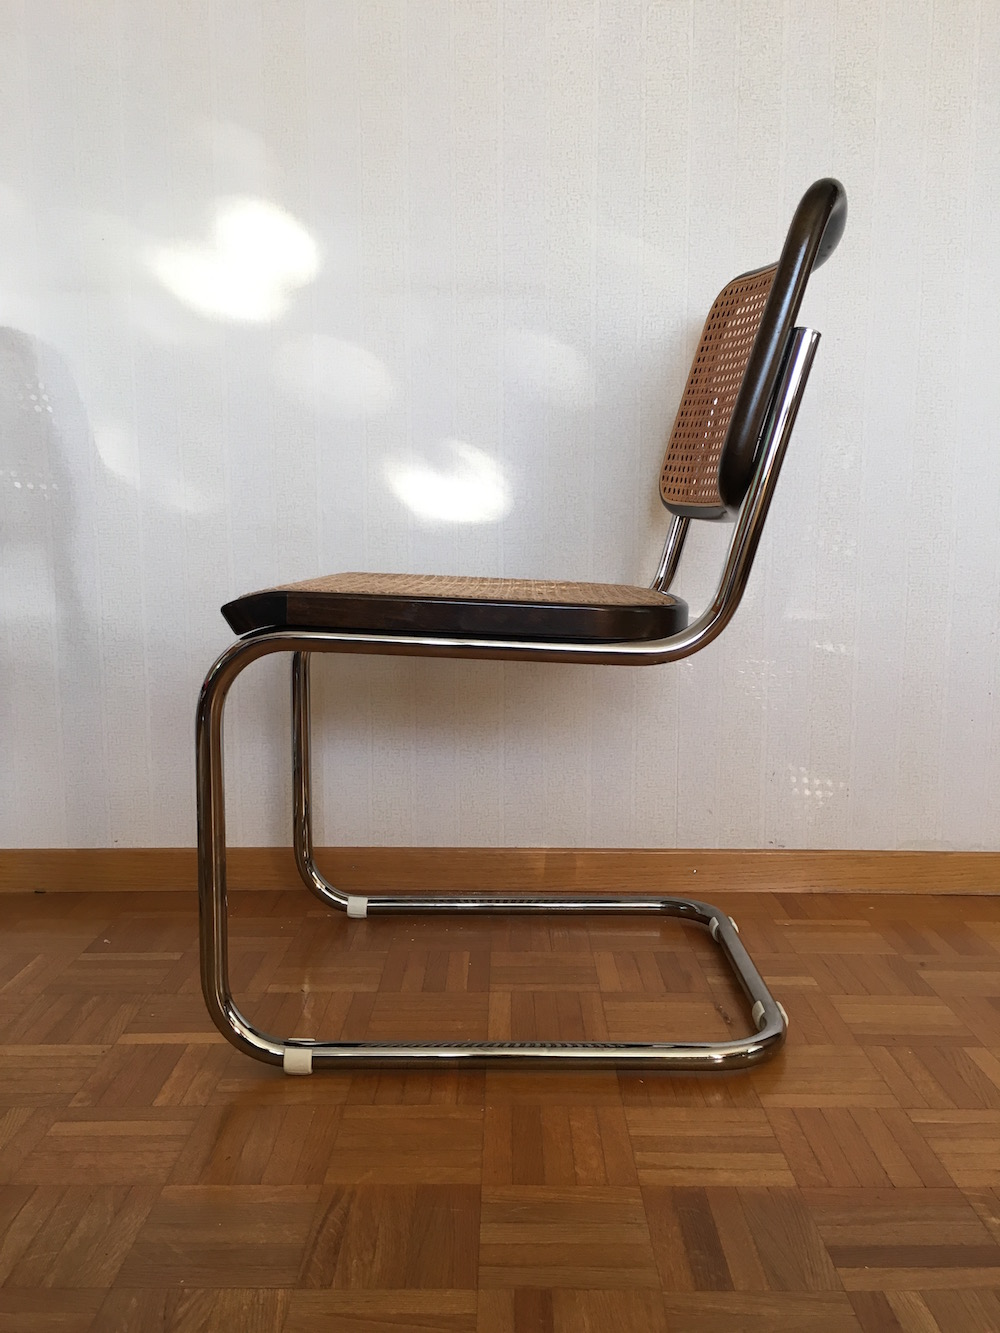 Thonet S32 Thonet S32 Top Thonets S Chair Designed By Marcel Breuer In Is